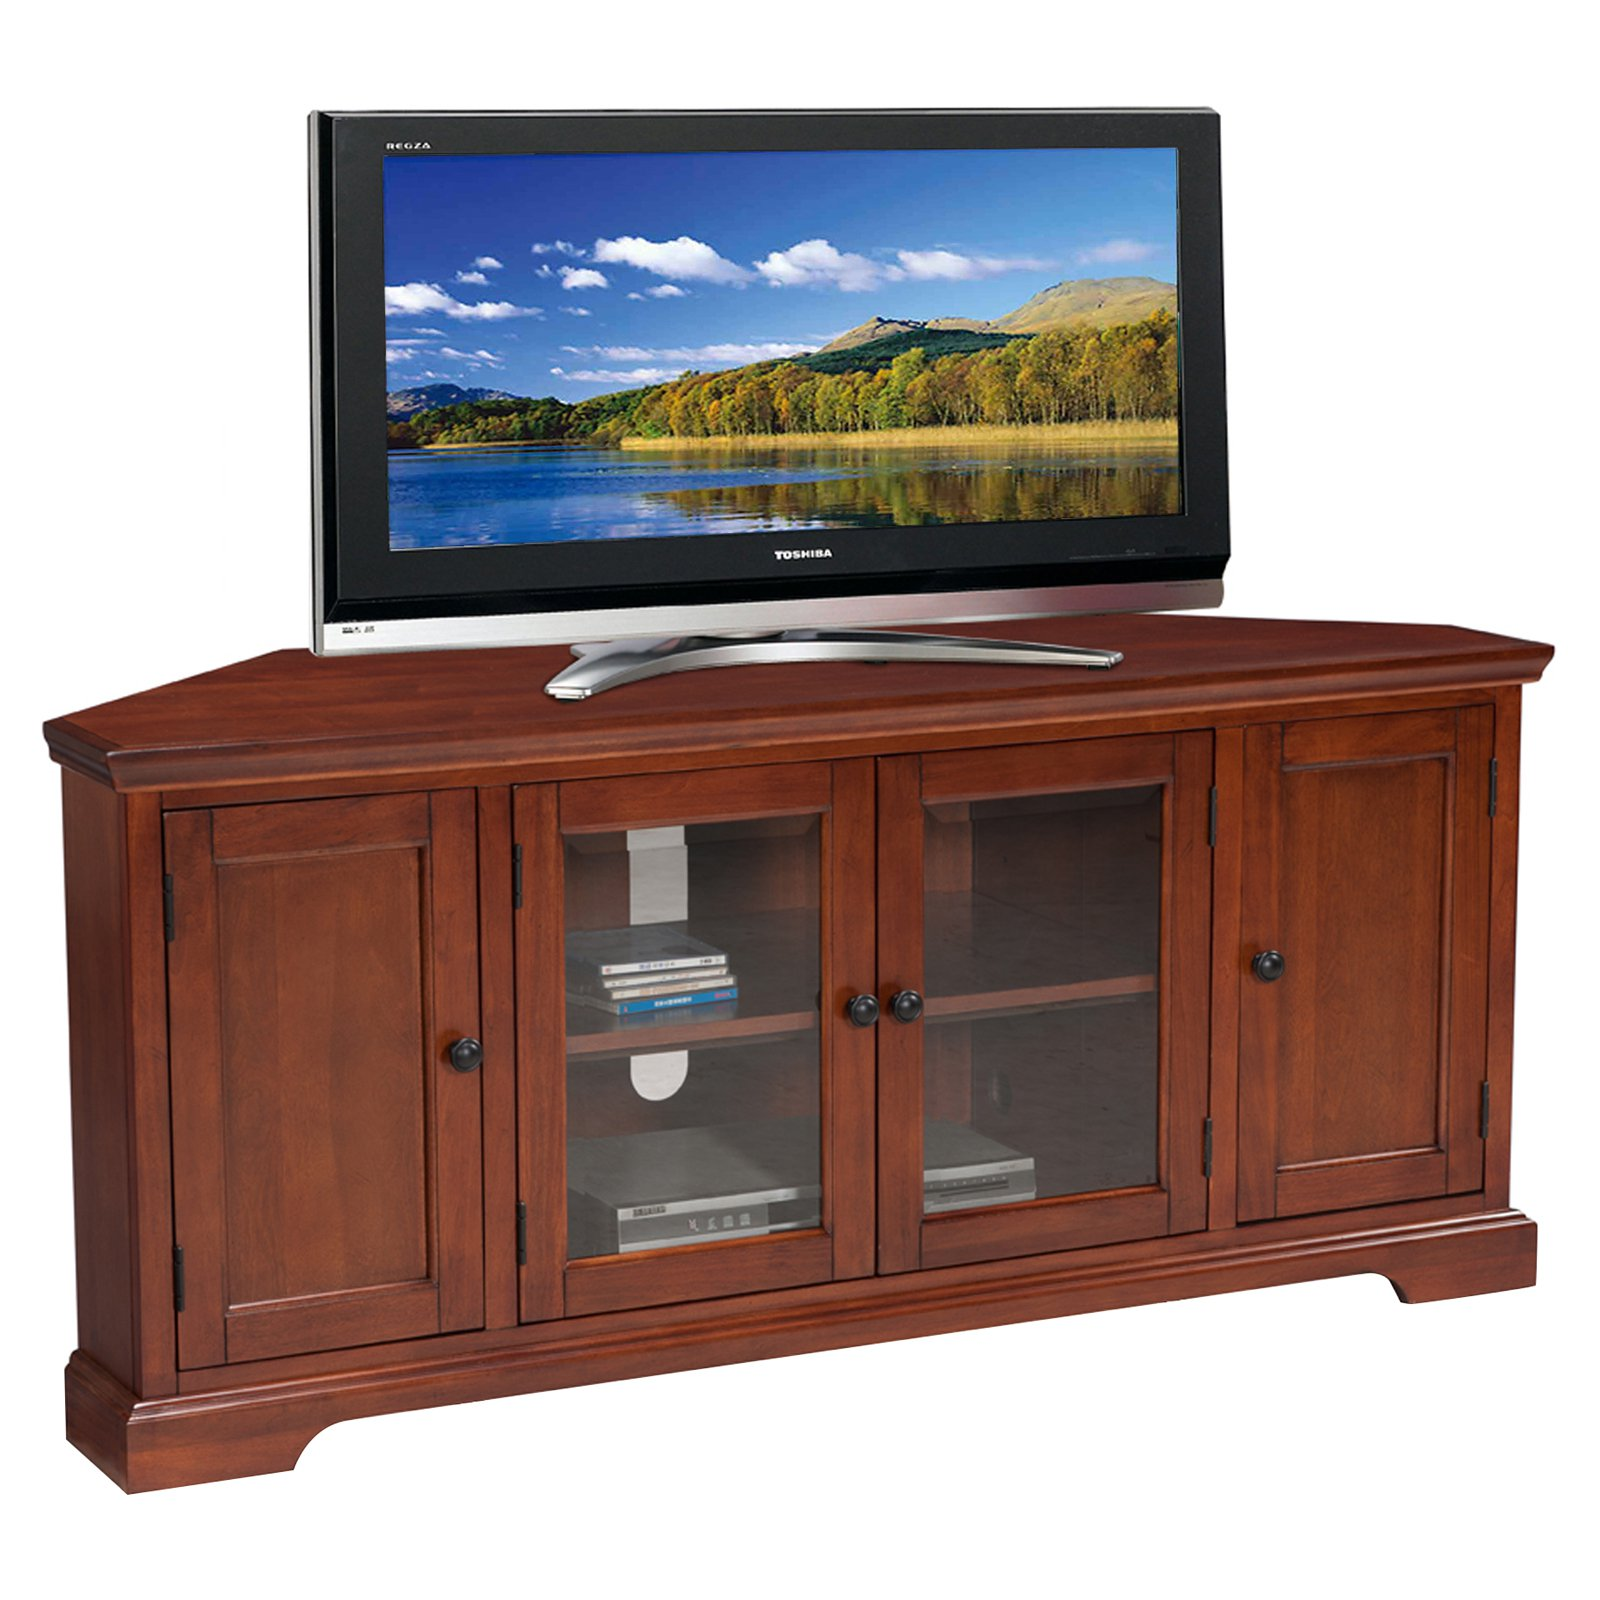 60 inch corner tv stand - Leick Riley Holliday 60 In Corner Tv Stand Westwood Cherry Walmart Com